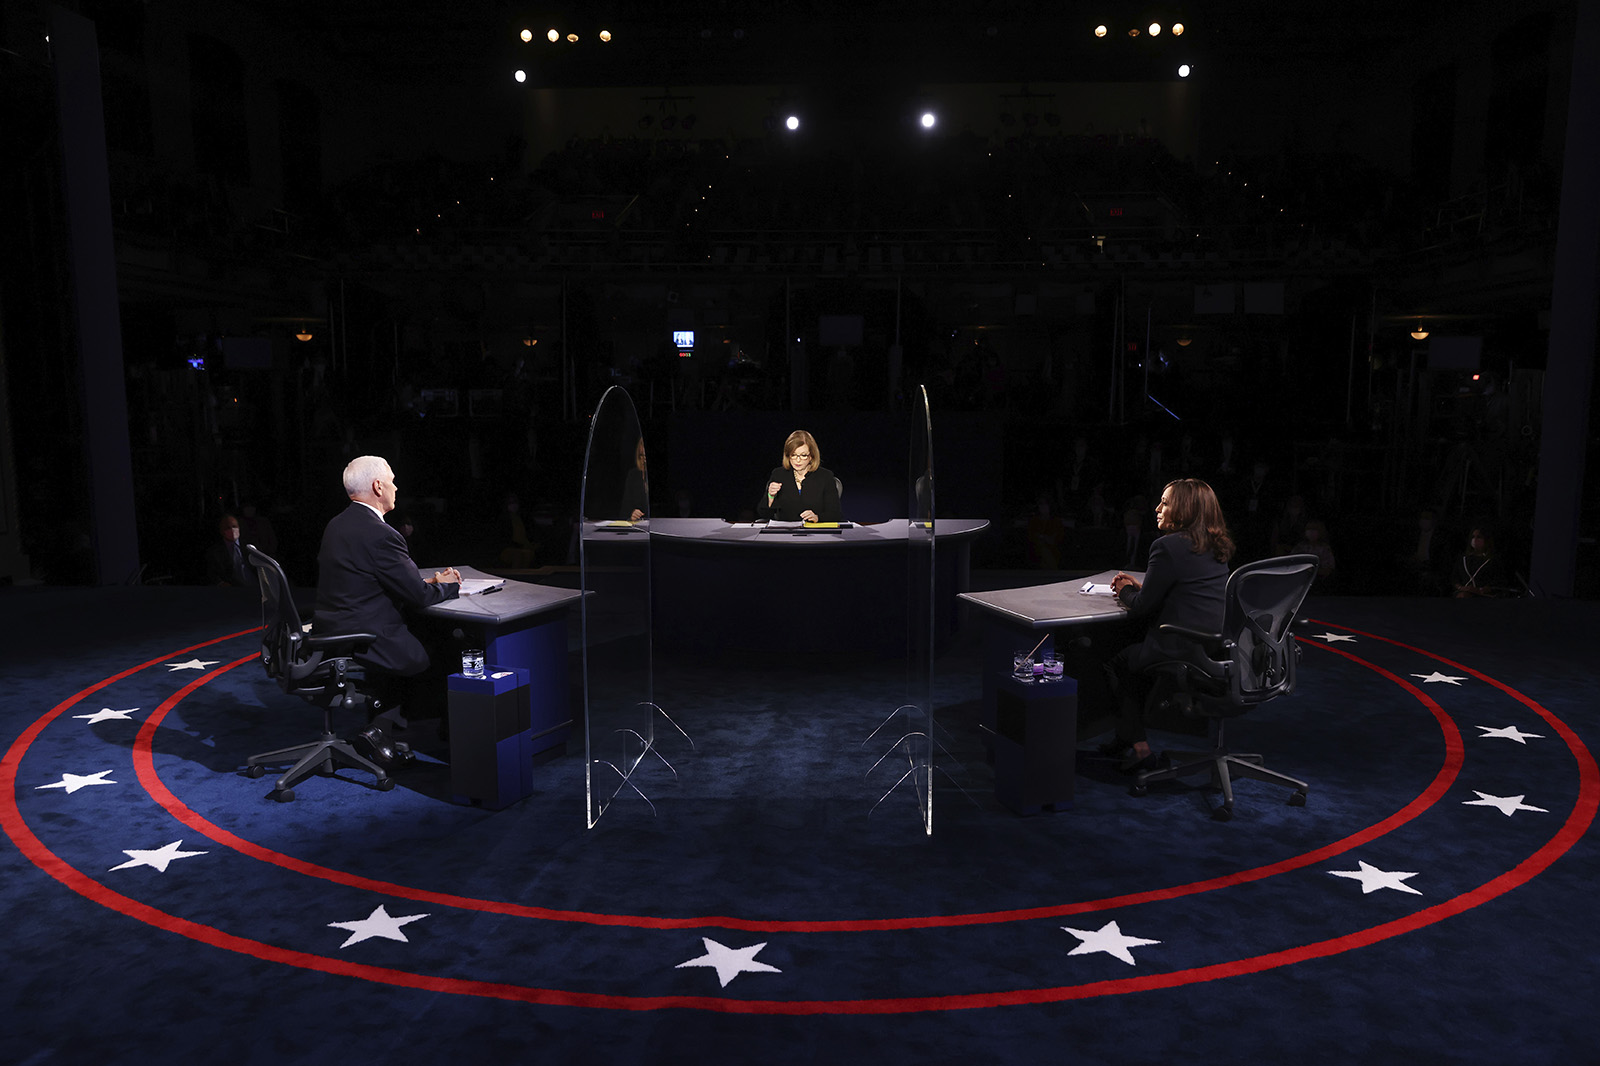 Vice President Mike Pence and Democratic vice presidential candidate Sen. Kamala Harris listens to a question from moderator USA Today Washington Bureau Chief Susan Page during the vice presidential debate on Wednesday in Salt Lake City.